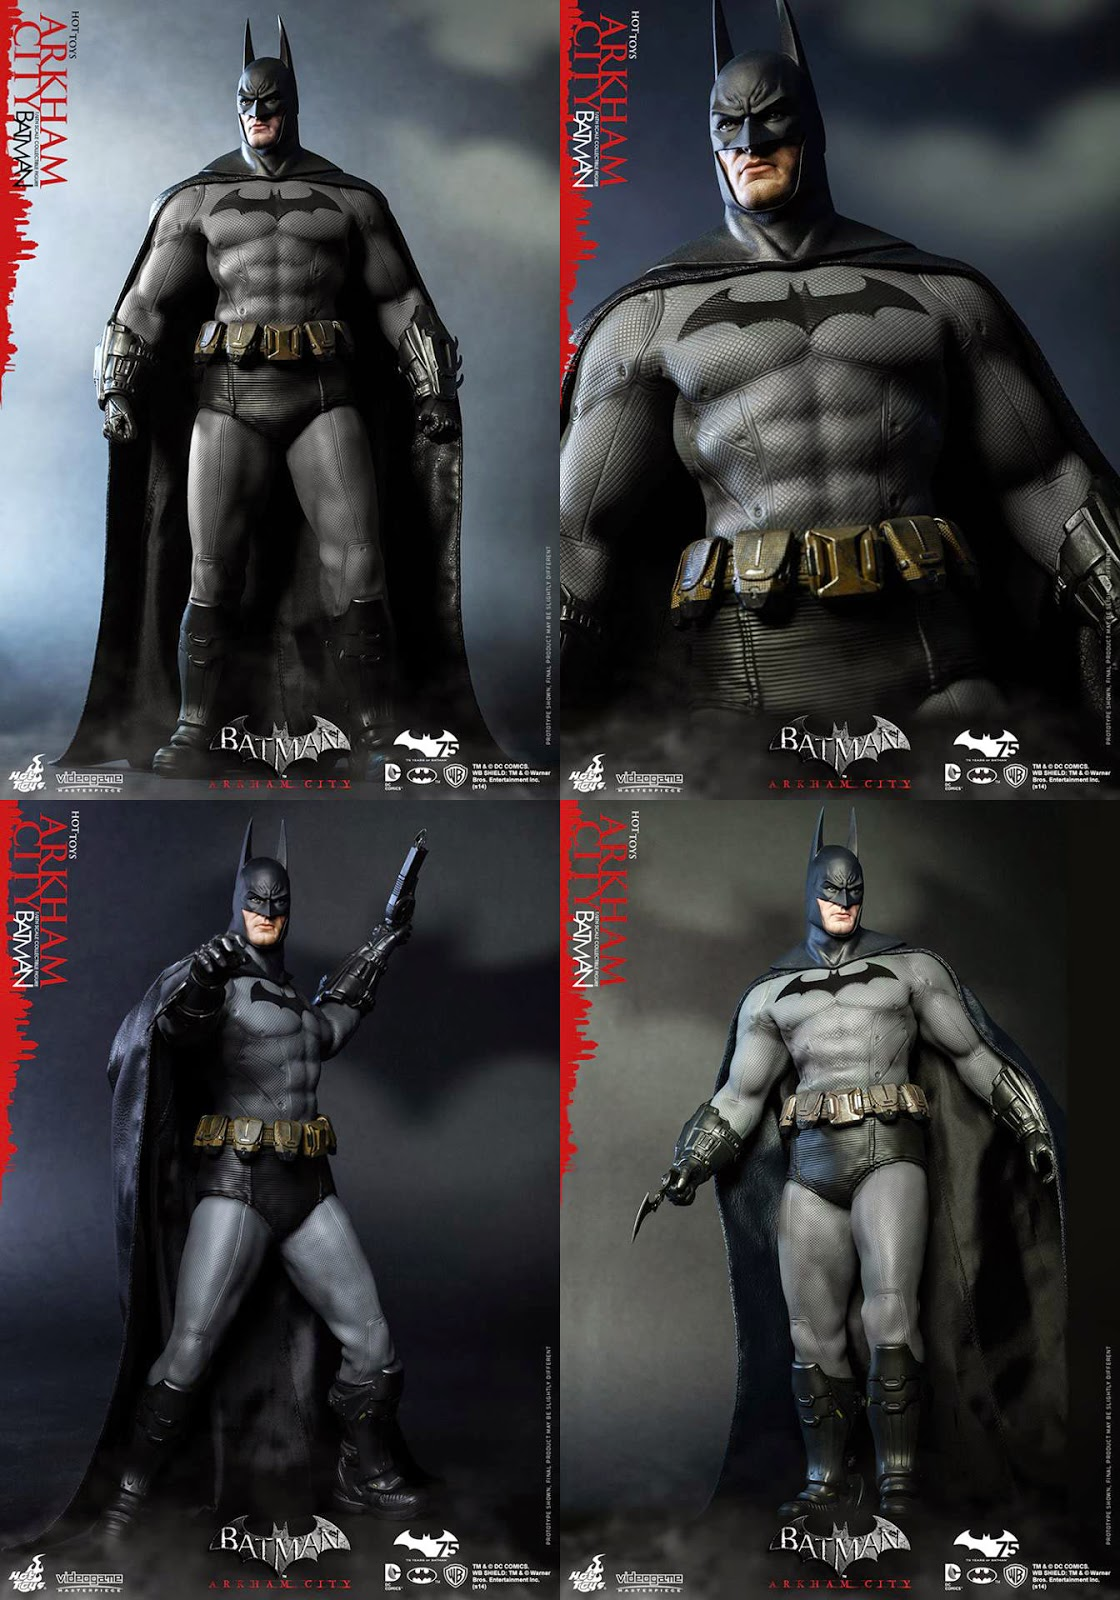 1/6 Arkham City: Batman by Hot Toys